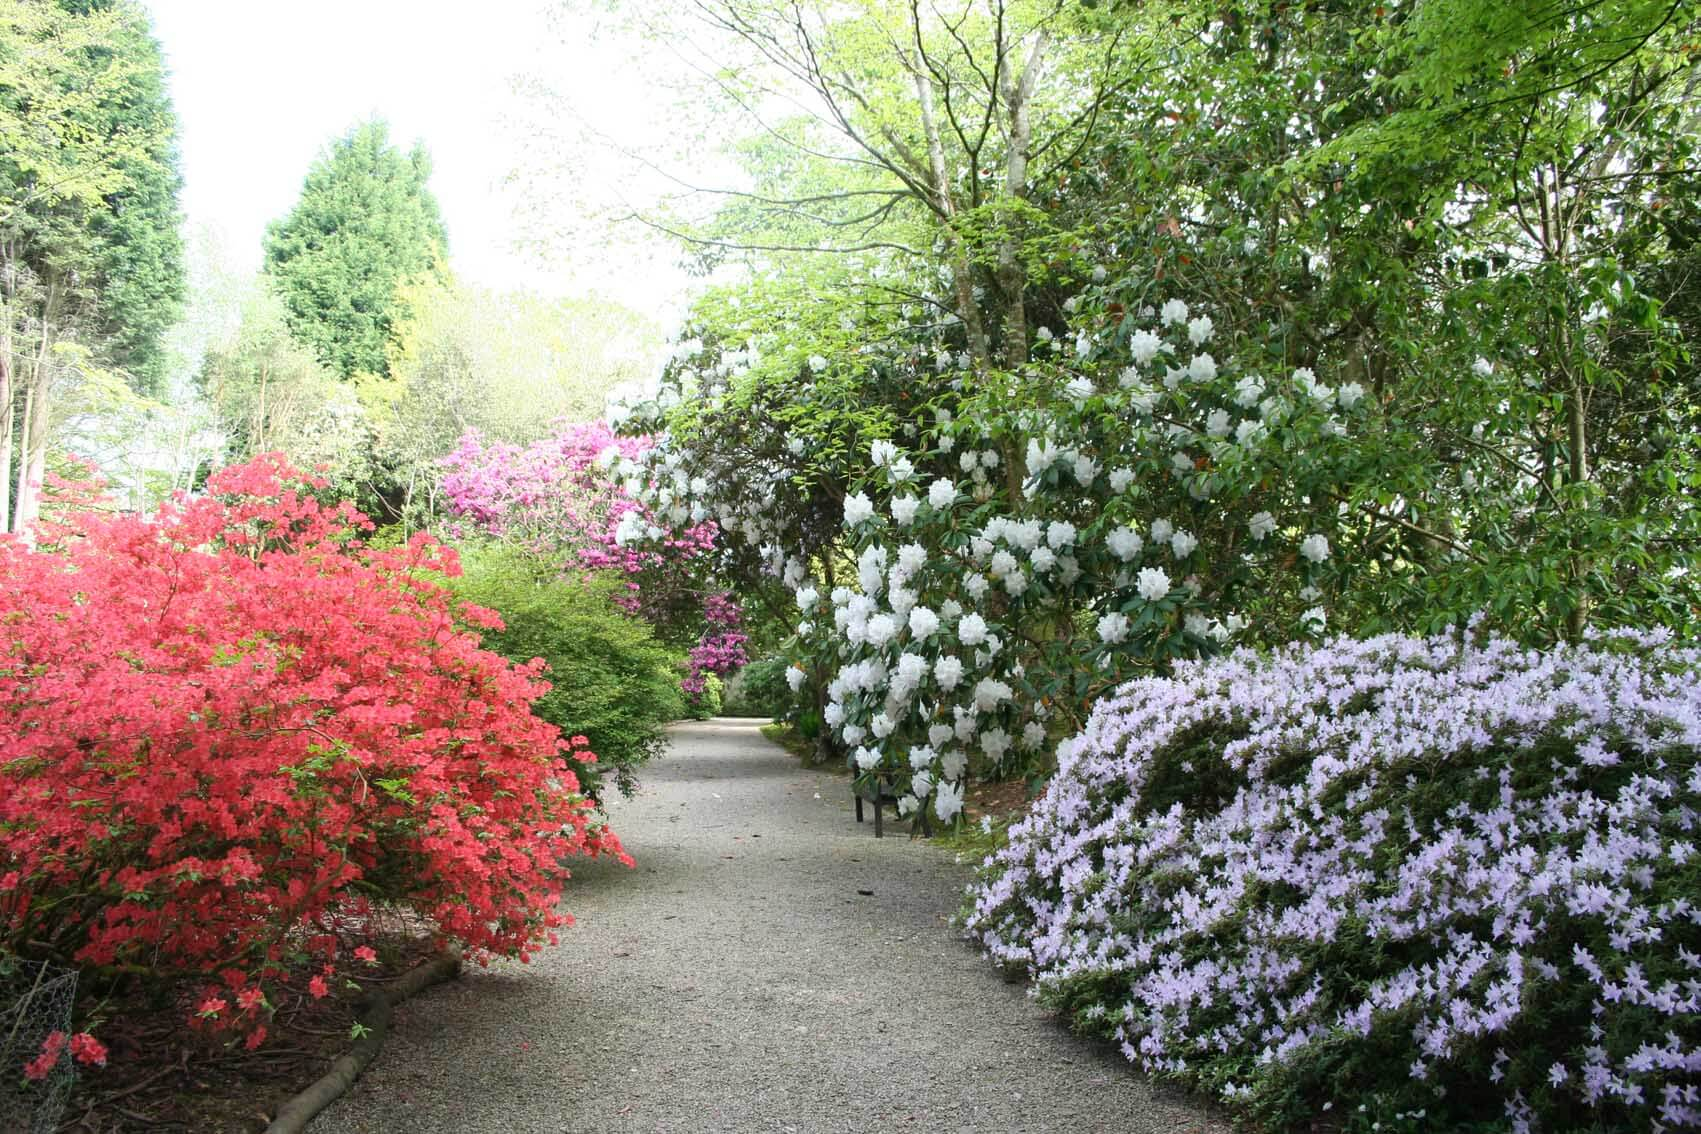 The George Johnson Walk at Trewithen Gardens in Cornwall